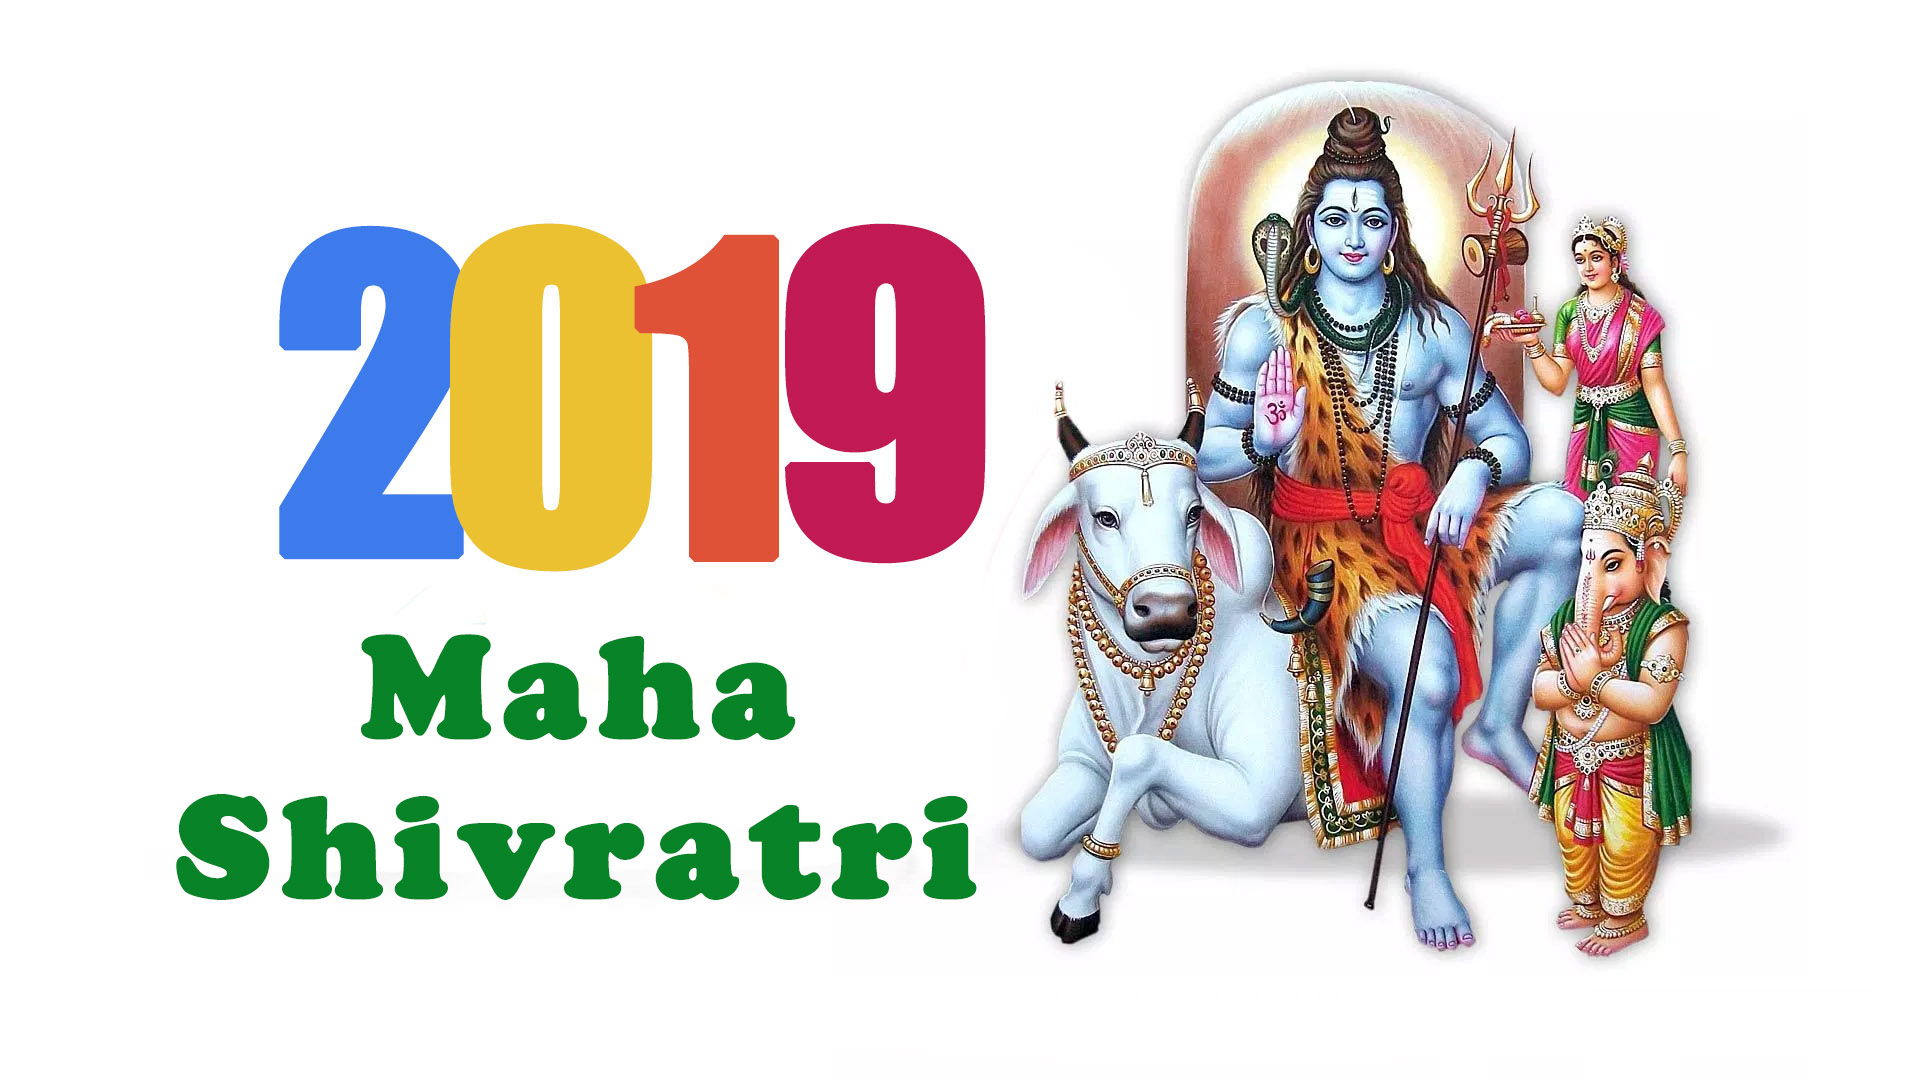 Mahashivratri Images Hd Free Download 2019